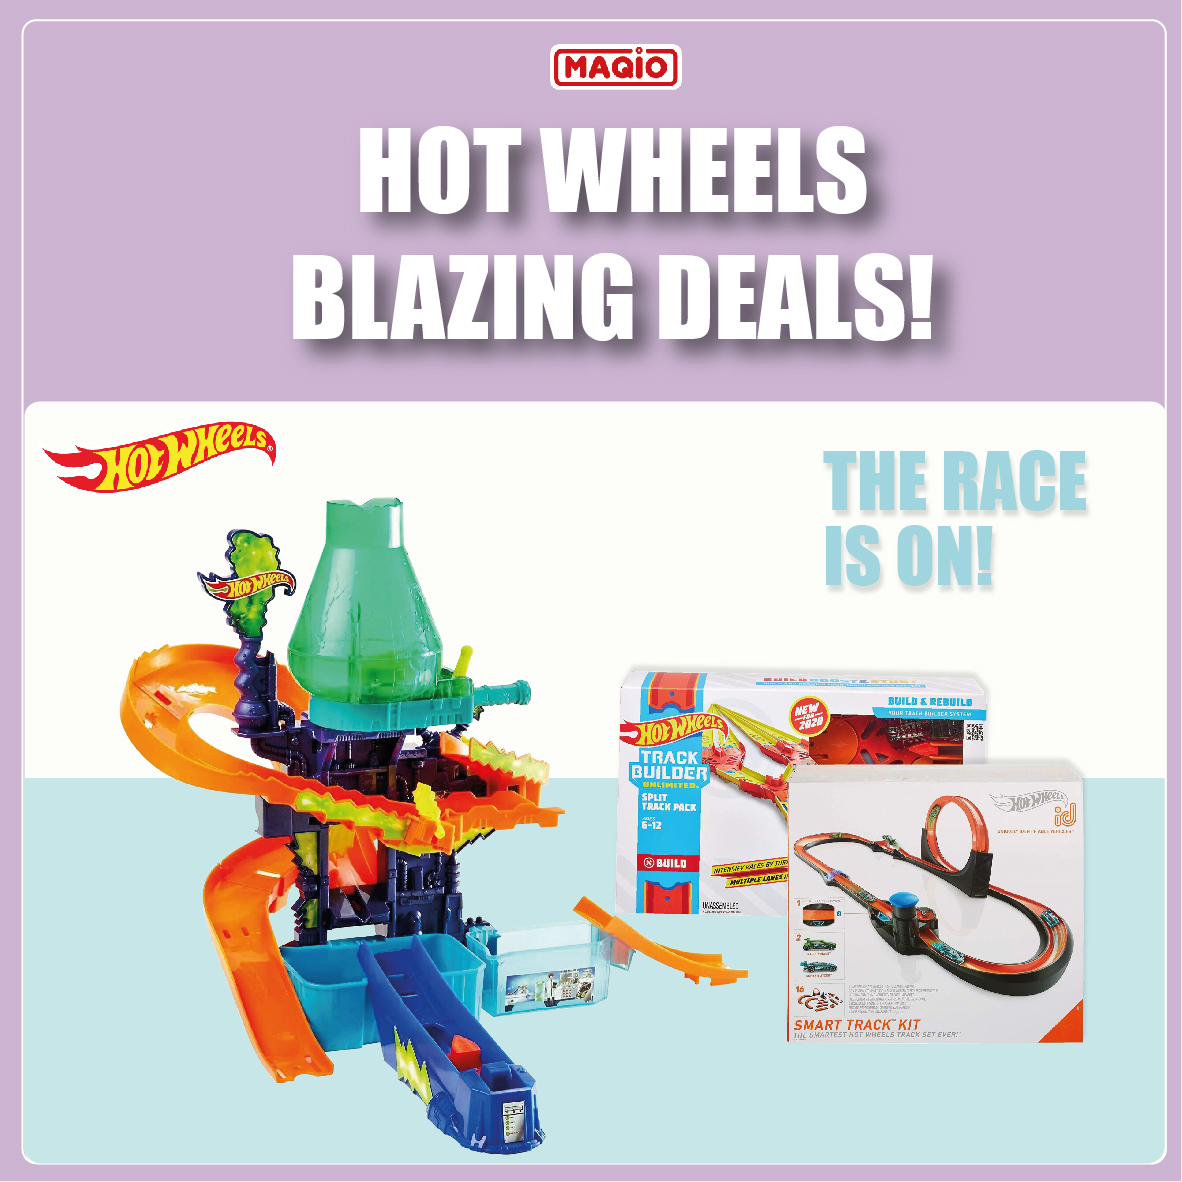 Check out these Blazing Hot Wheels Deals!😊  👉  #hotwheels #cars #assorted #playsets #monstertrucks #bestseller #sale #buynow #freedelivery #diecast #mattel #dc #teentitango #gulf #forza #present #deal #bargain #toycar #race #limited #race #toyset